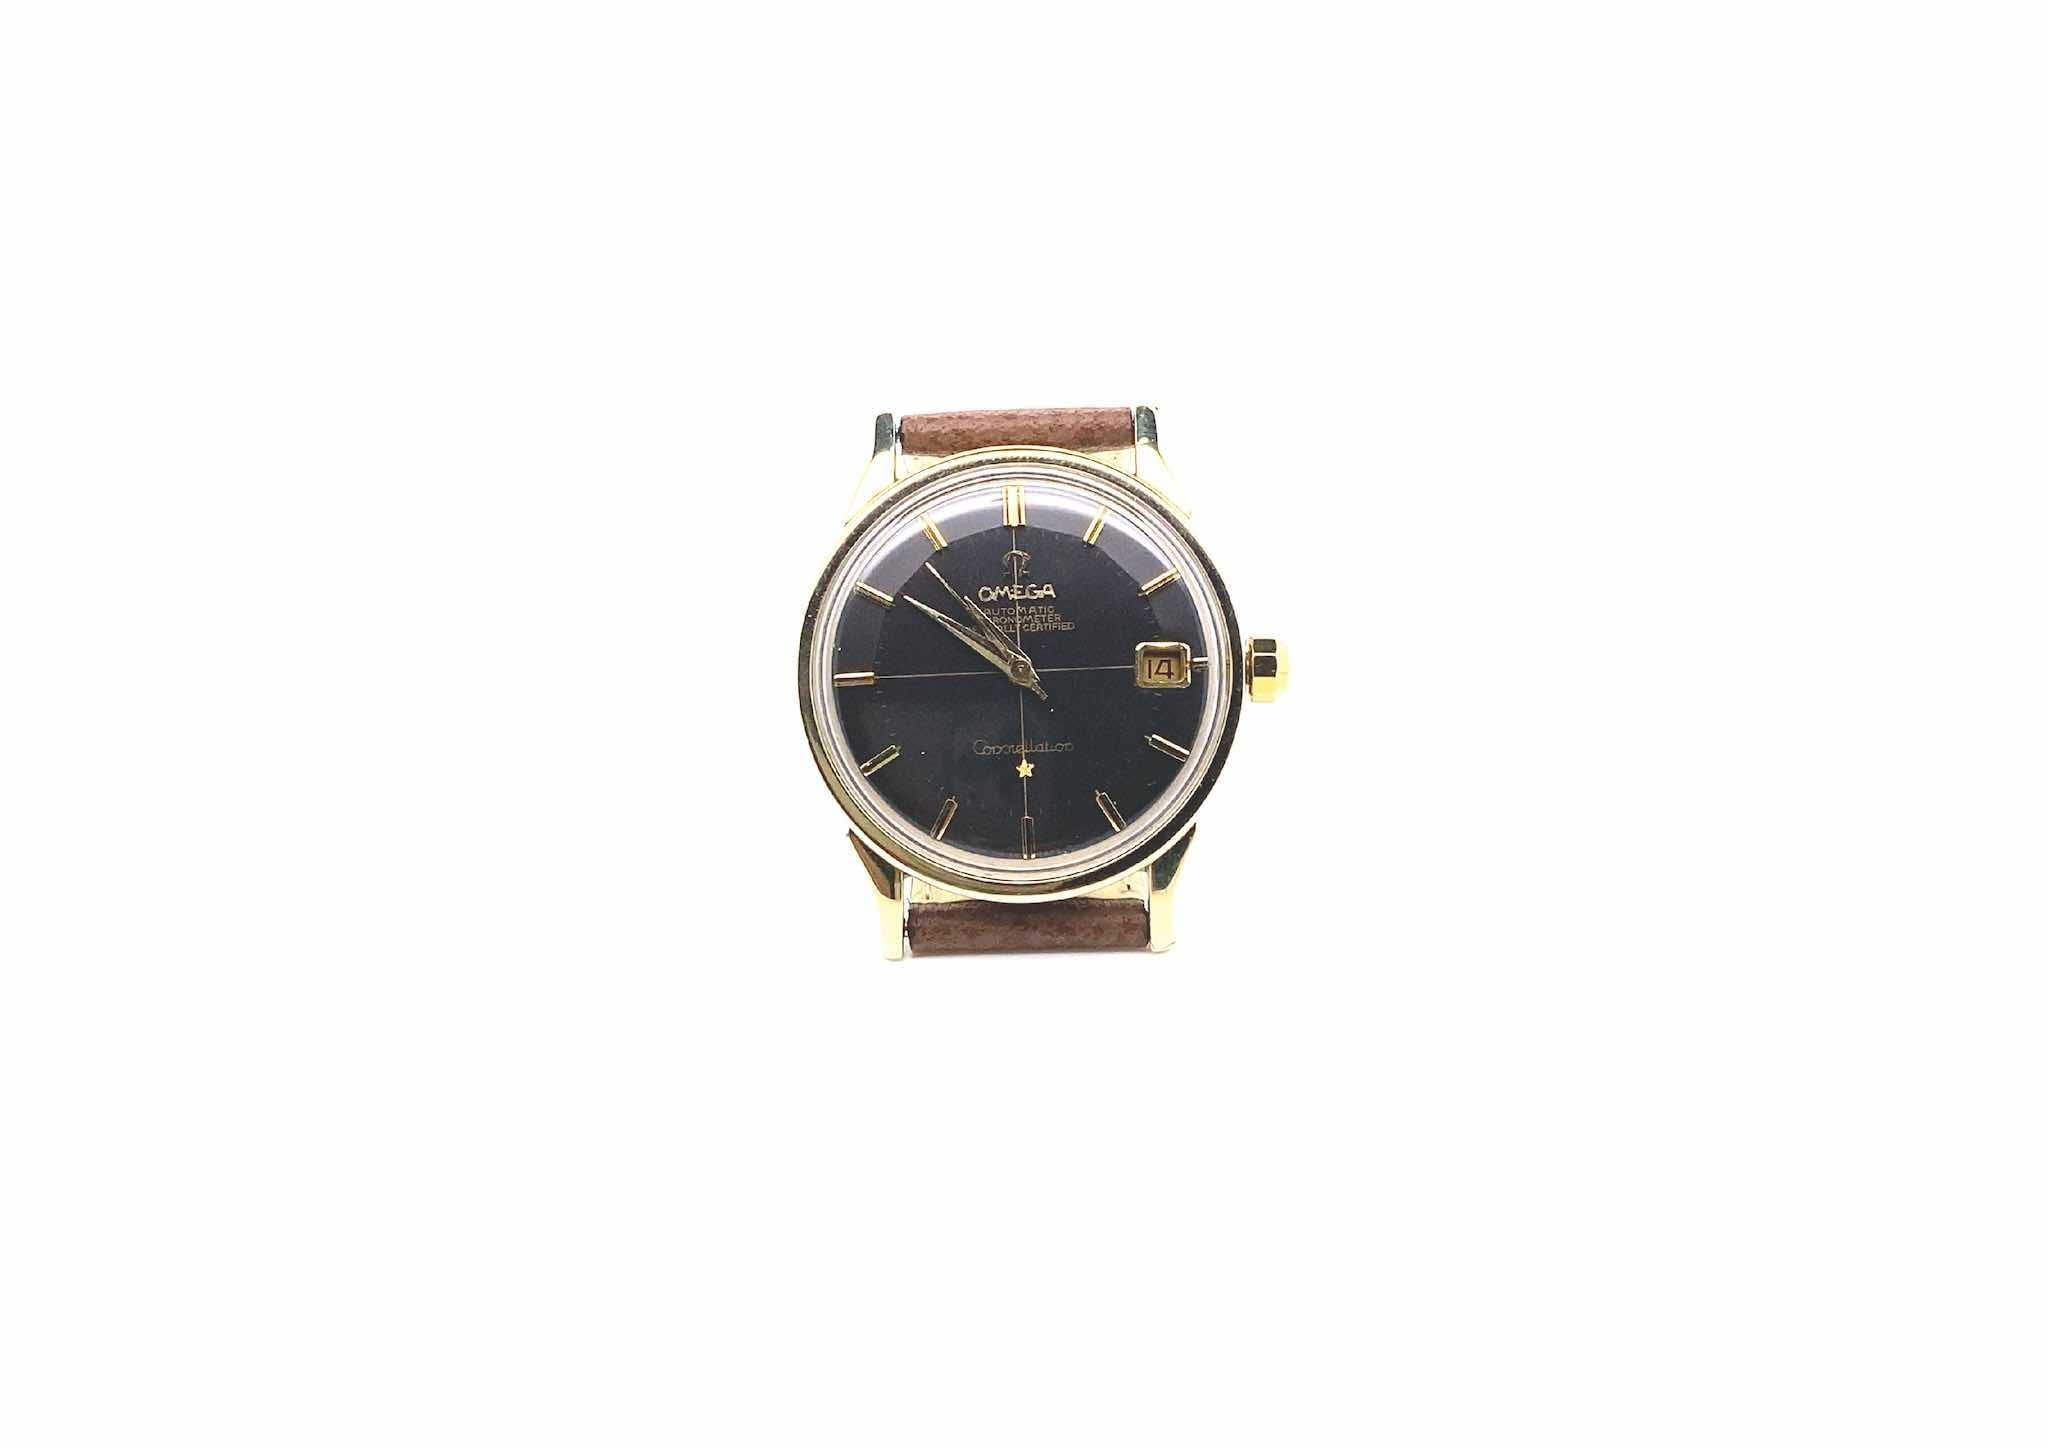 montre omega constelation occasion